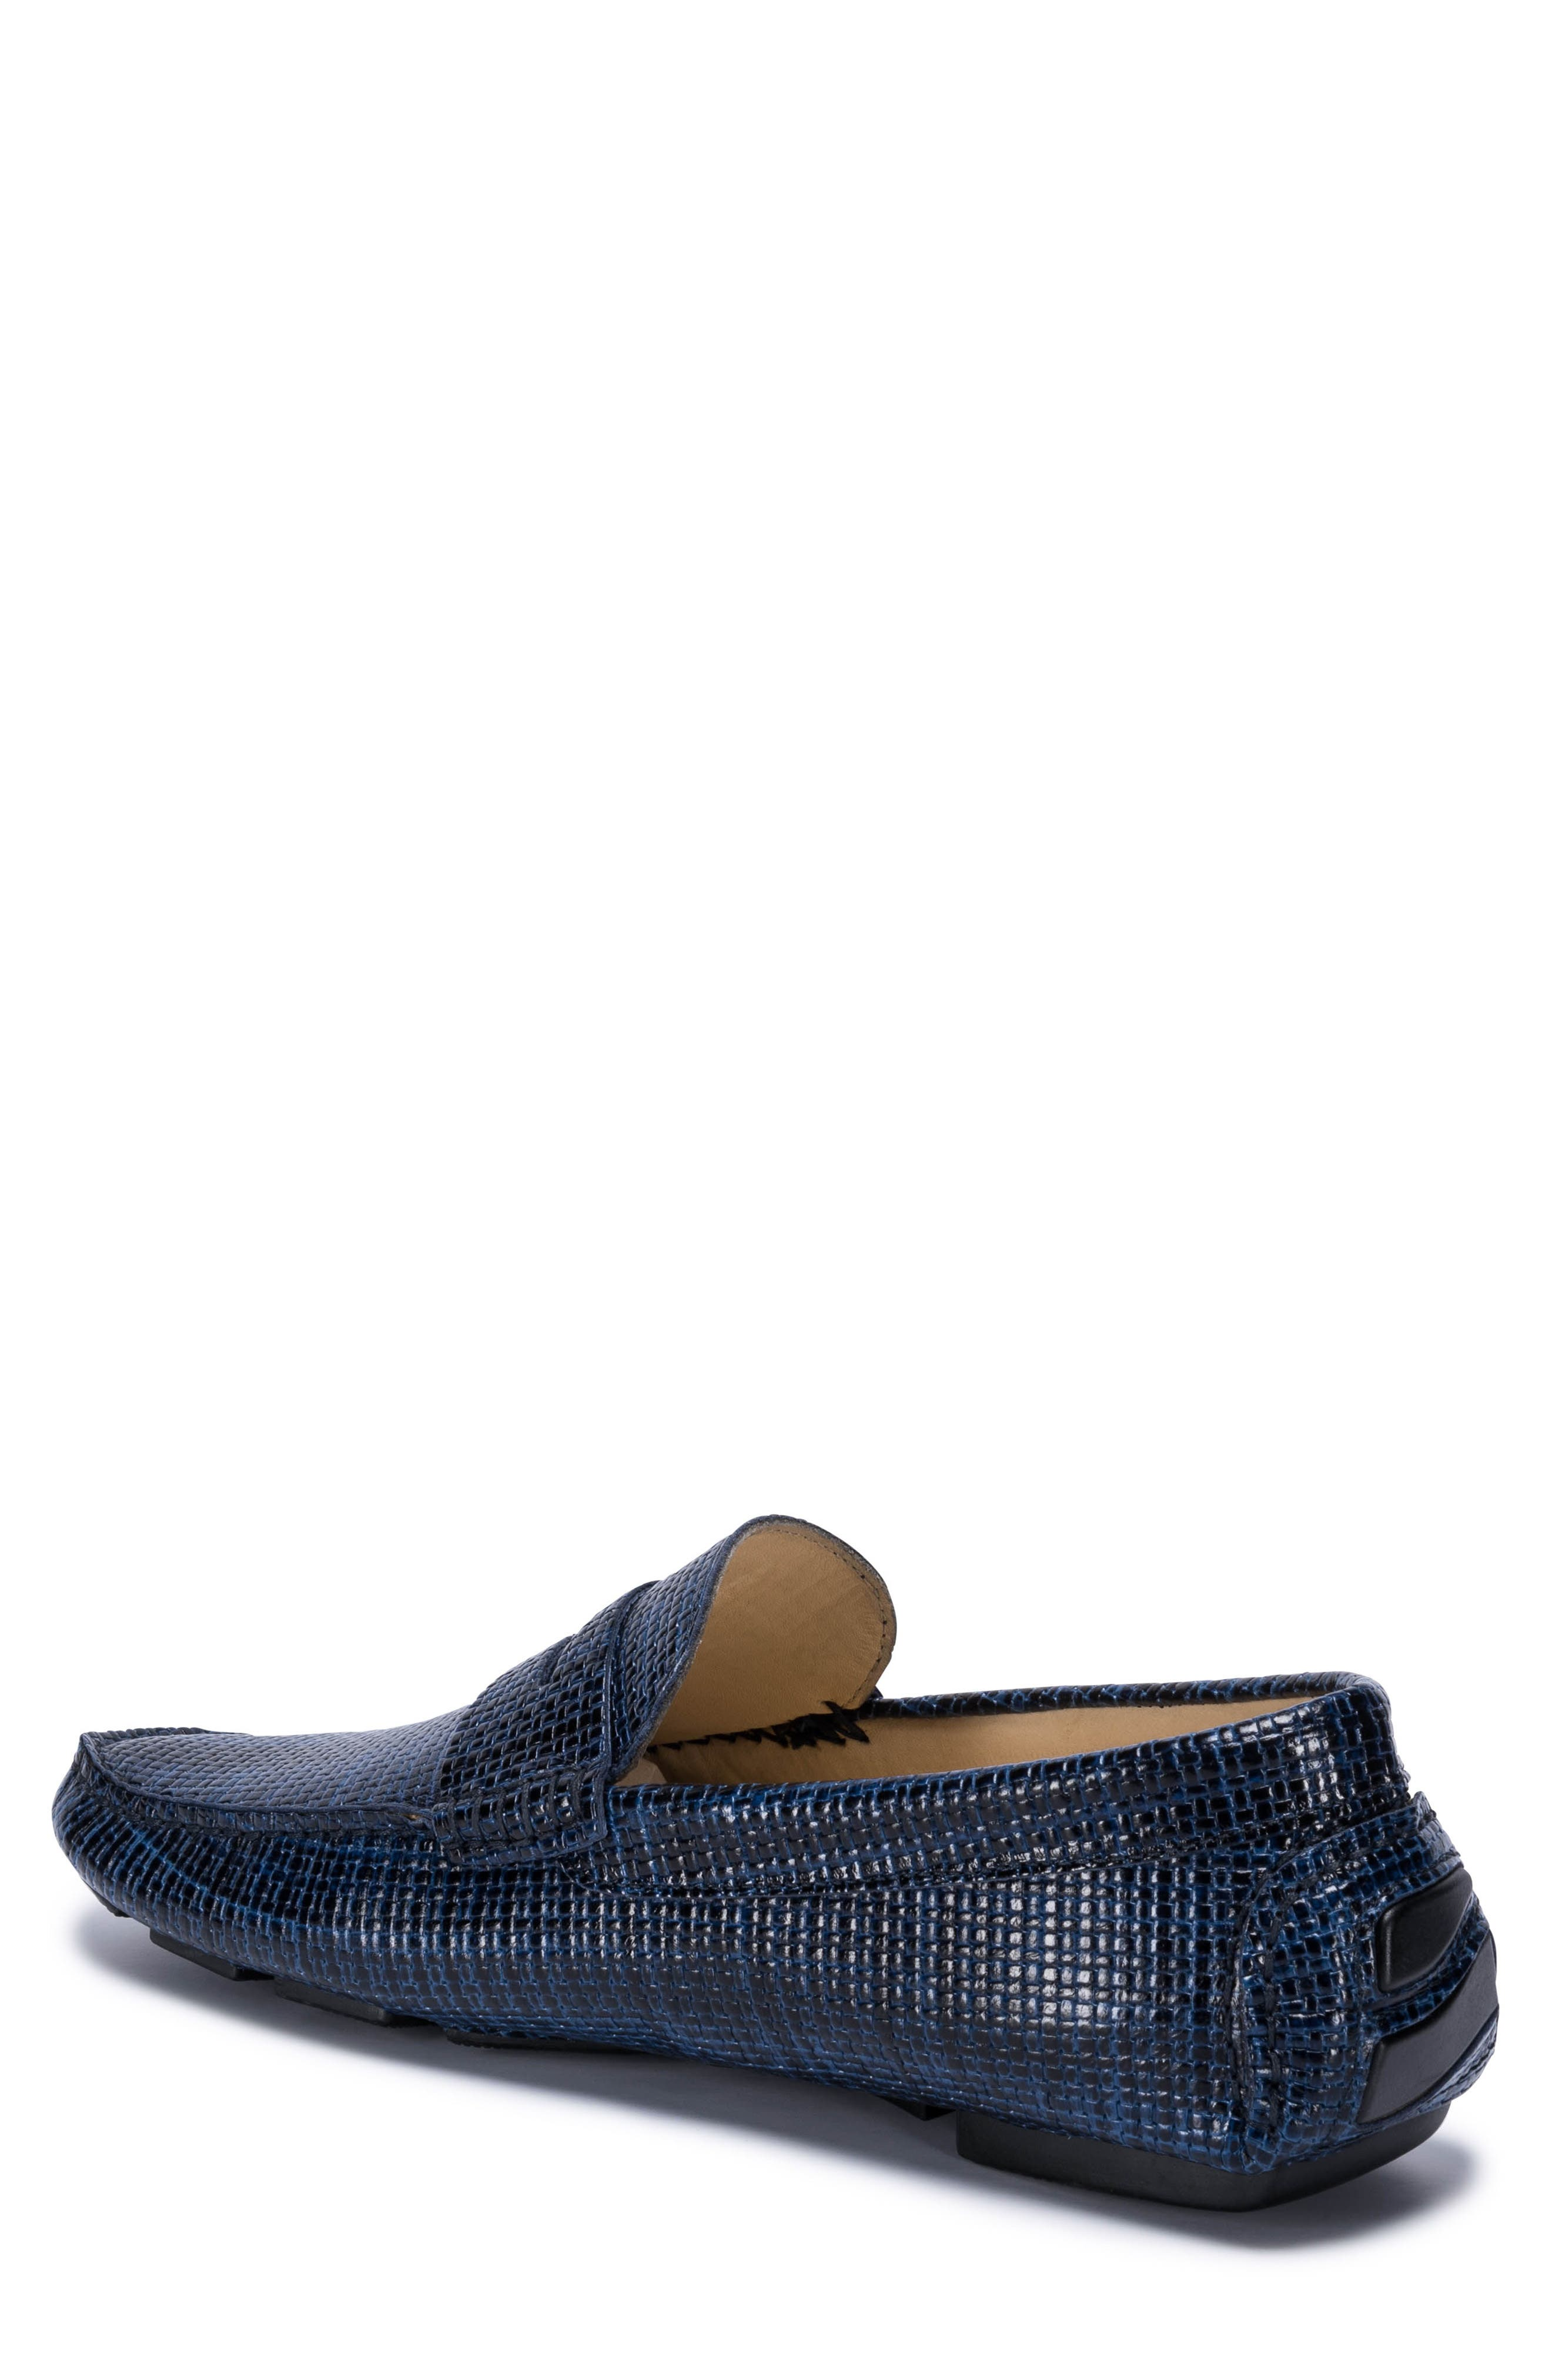 Montalcino Driving Penny Loafer,                             Alternate thumbnail 2, color,                             Blue Leather